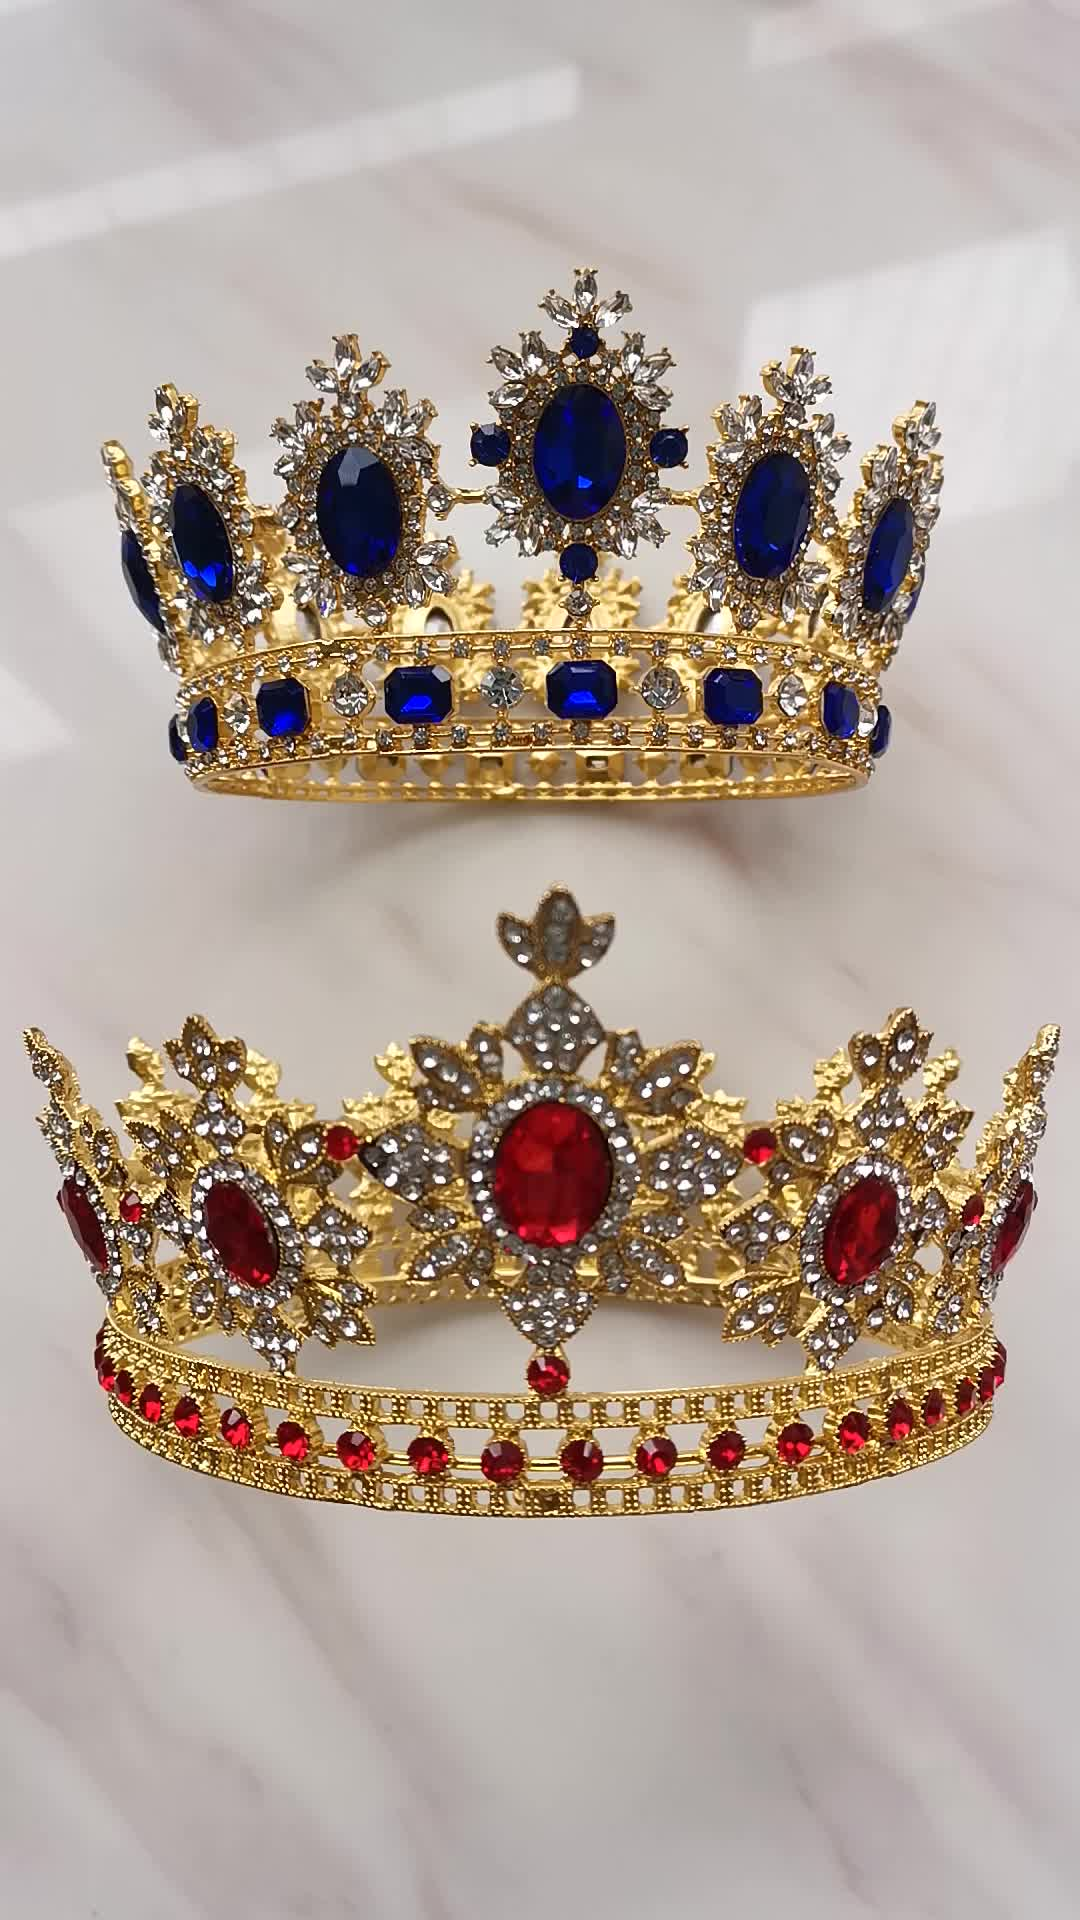 Full round Sapphire pageant crowns ruby crystal wedding queen tiara crowns